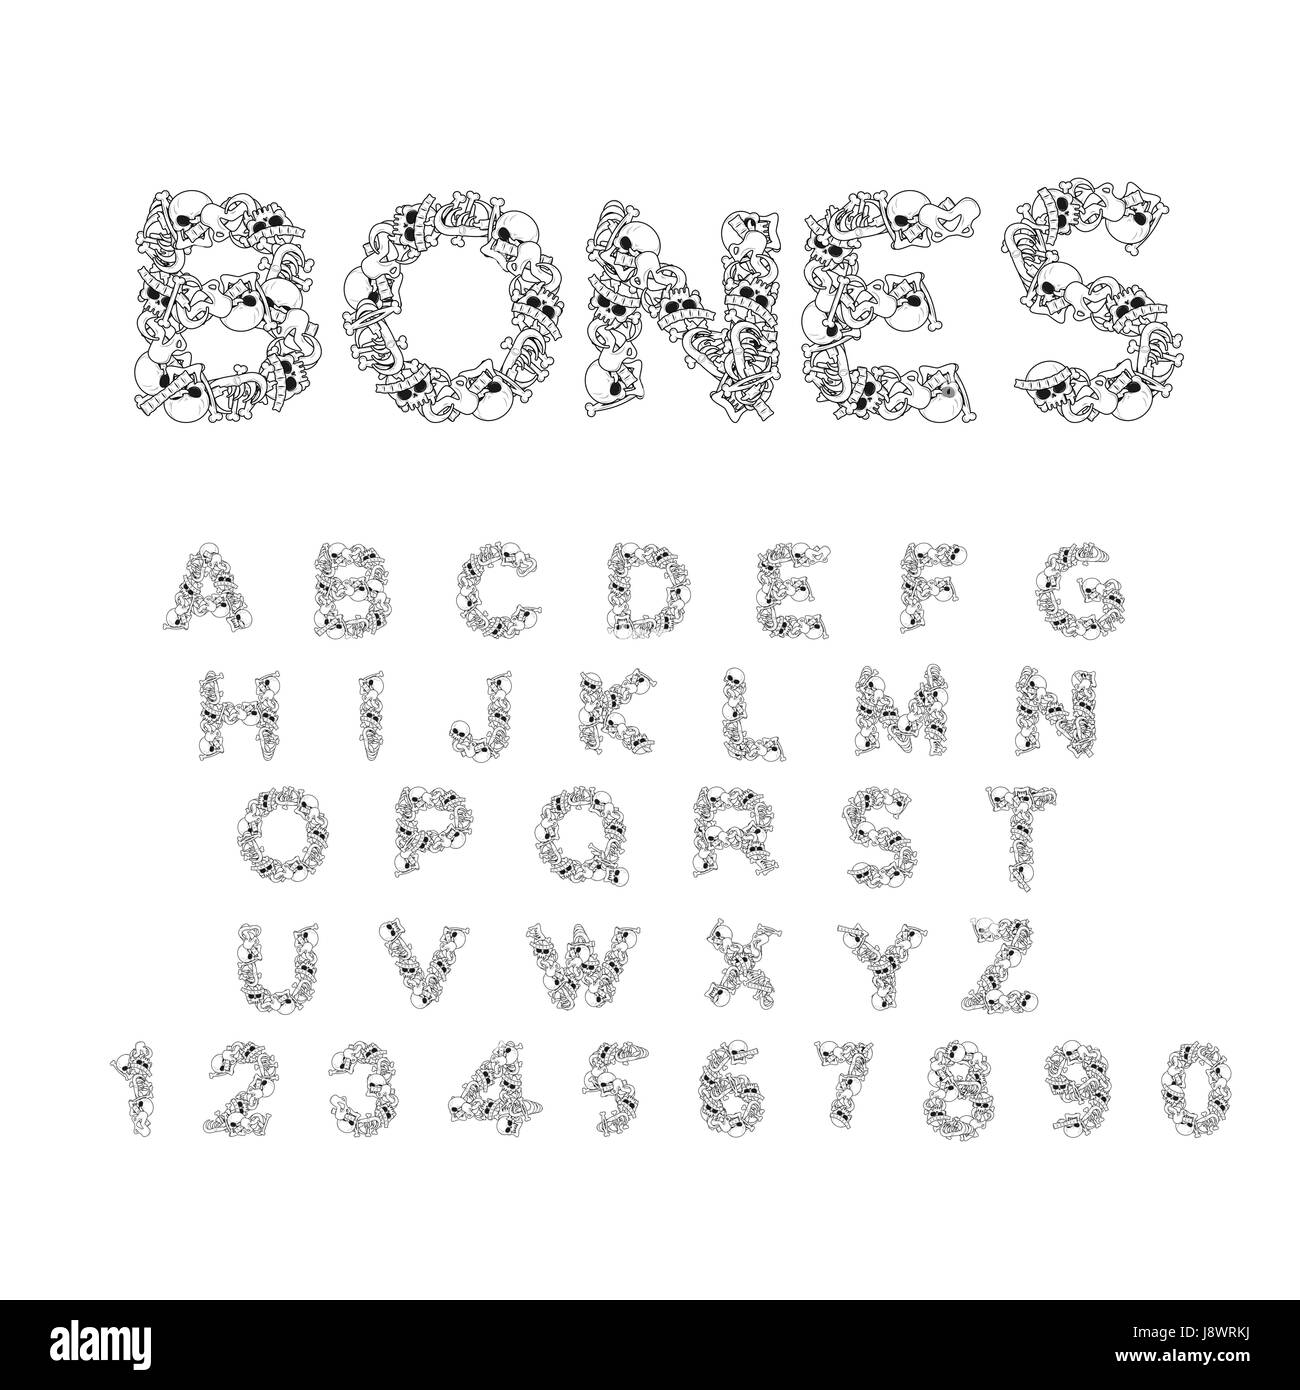 Letters Anatomy Skeleton Font Skull And Spine Jaw Pelvis Hell Scary ABC